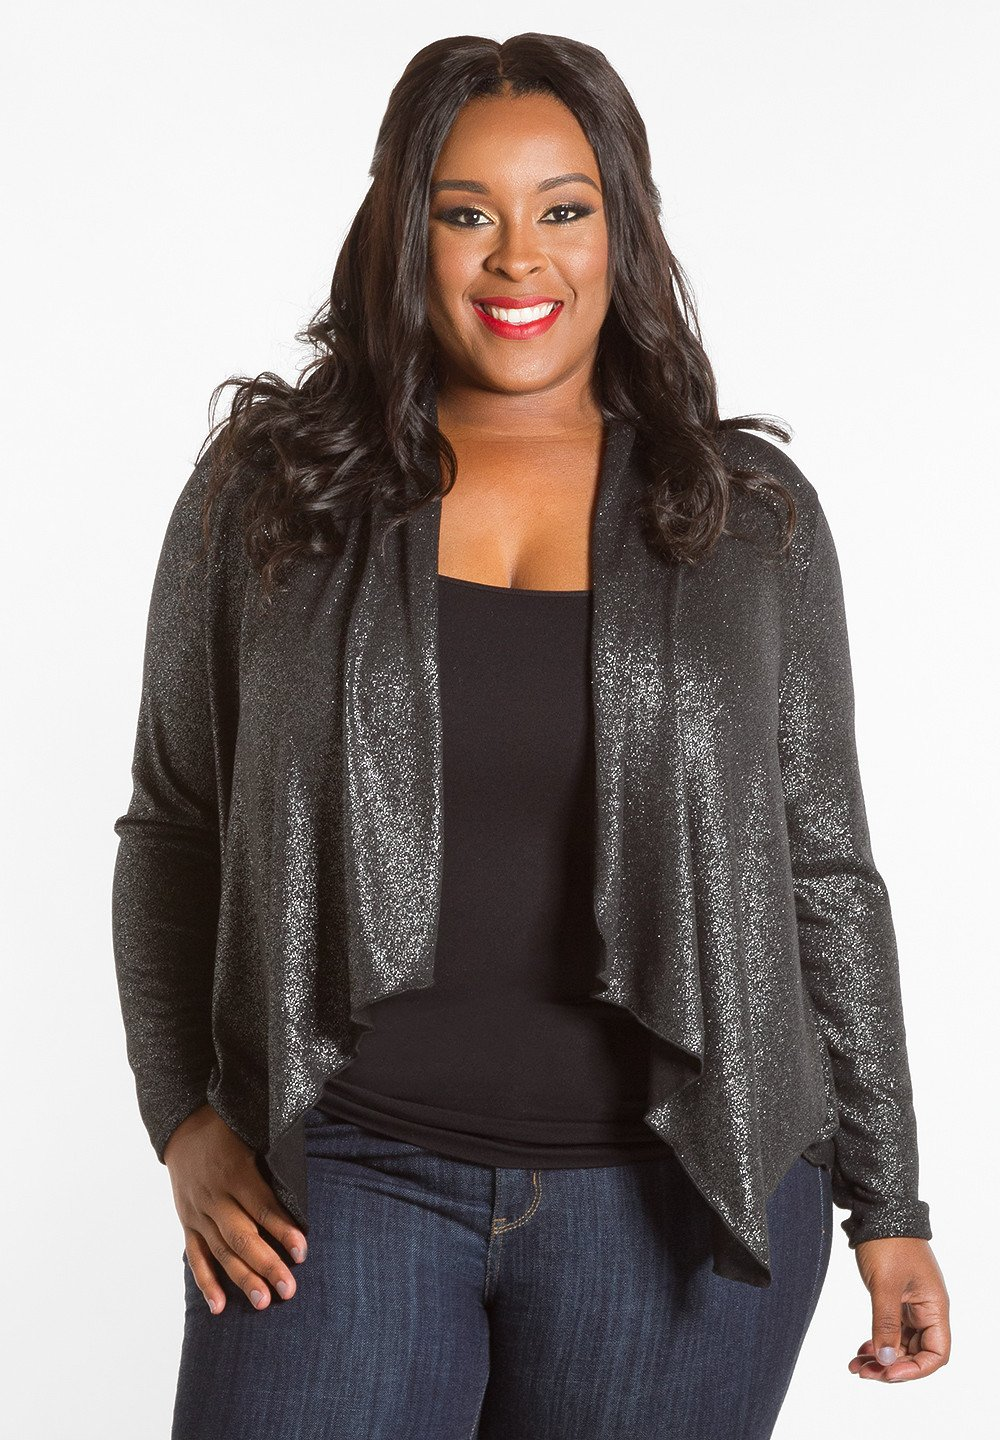 SWAK Designs Plus Size Ethical Fashion